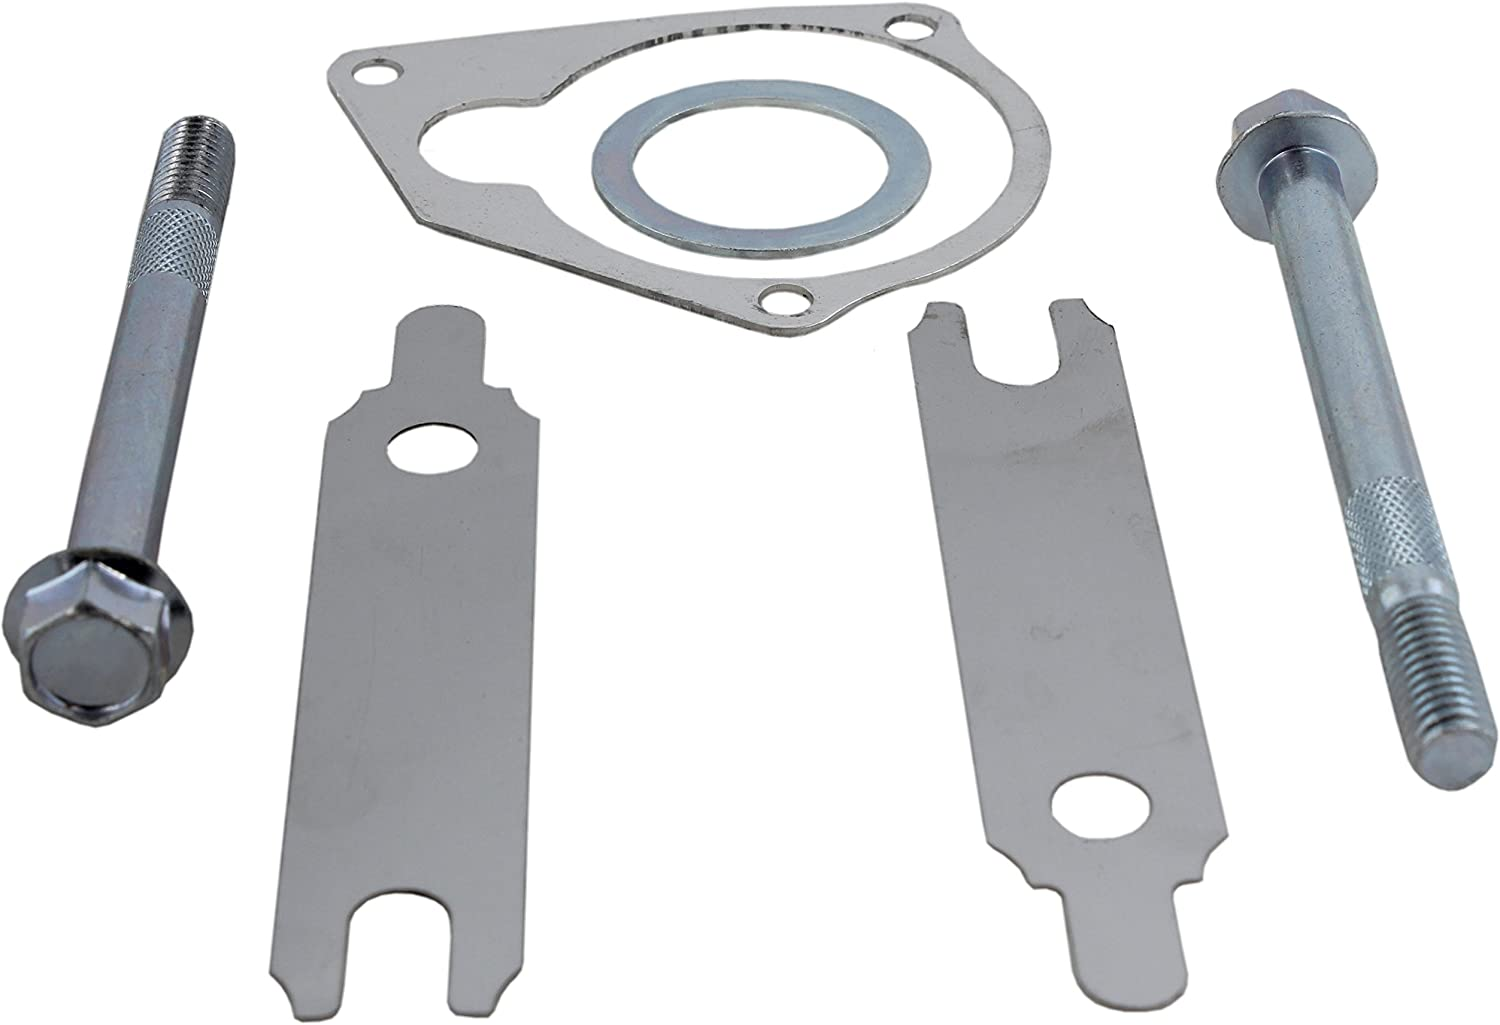 Chevy Engine Mount Bolt Kit SBC 350 and other Chevrolet